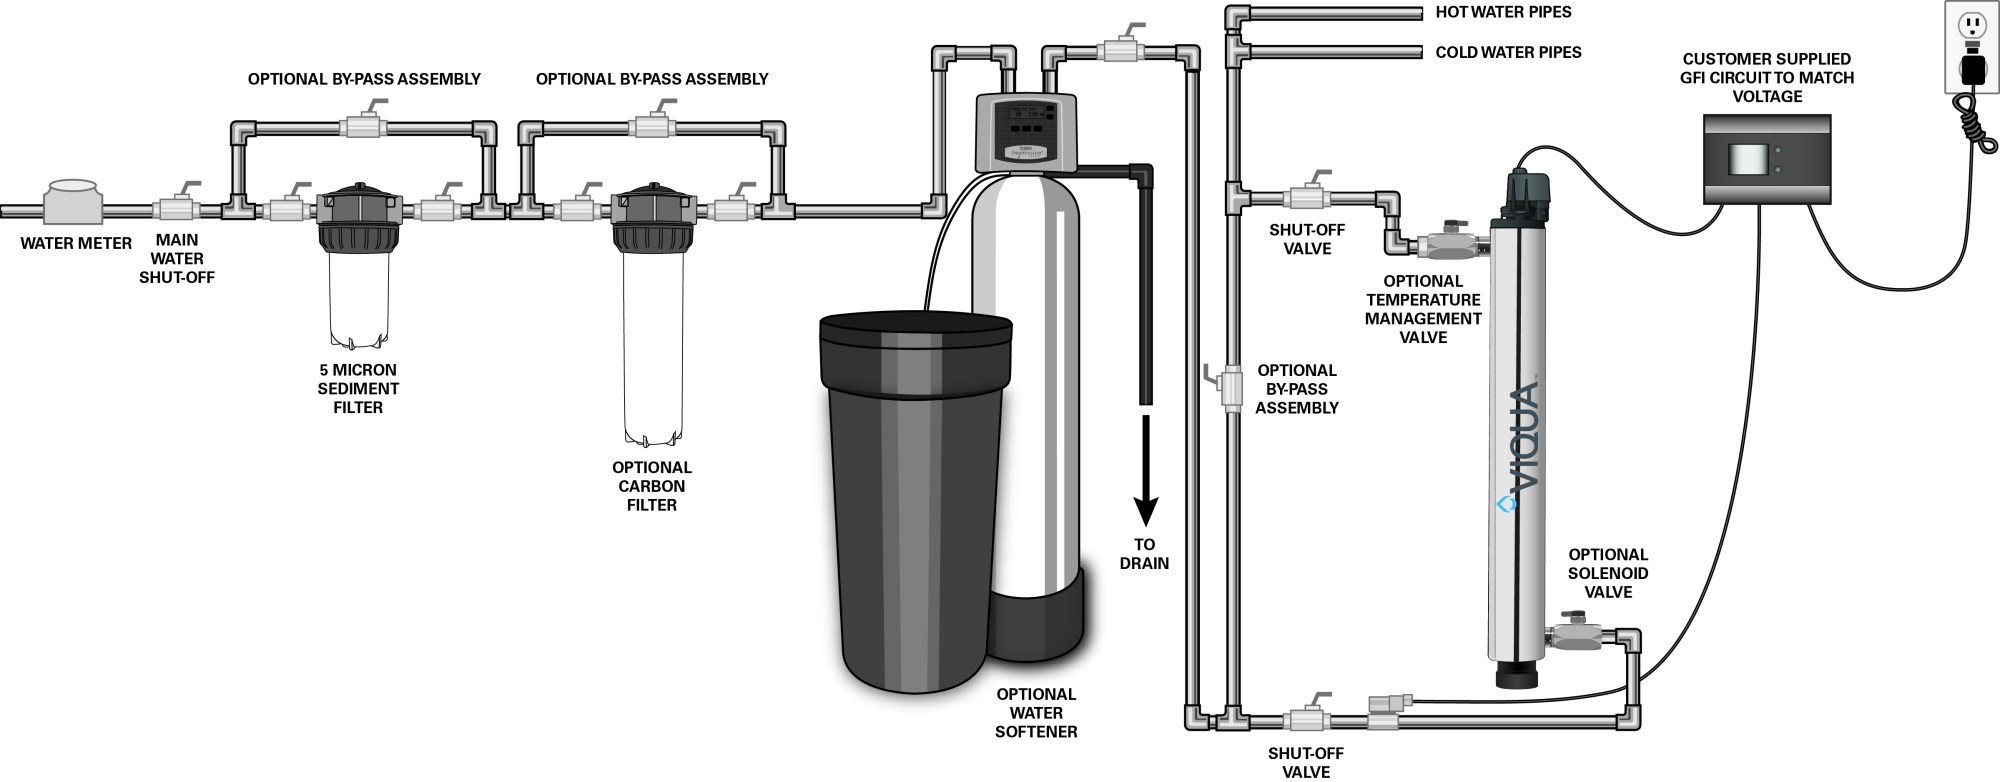 hight resolution of vh asni class uv system for home plus viqua jpg 4797x1876 water softener piping diagram